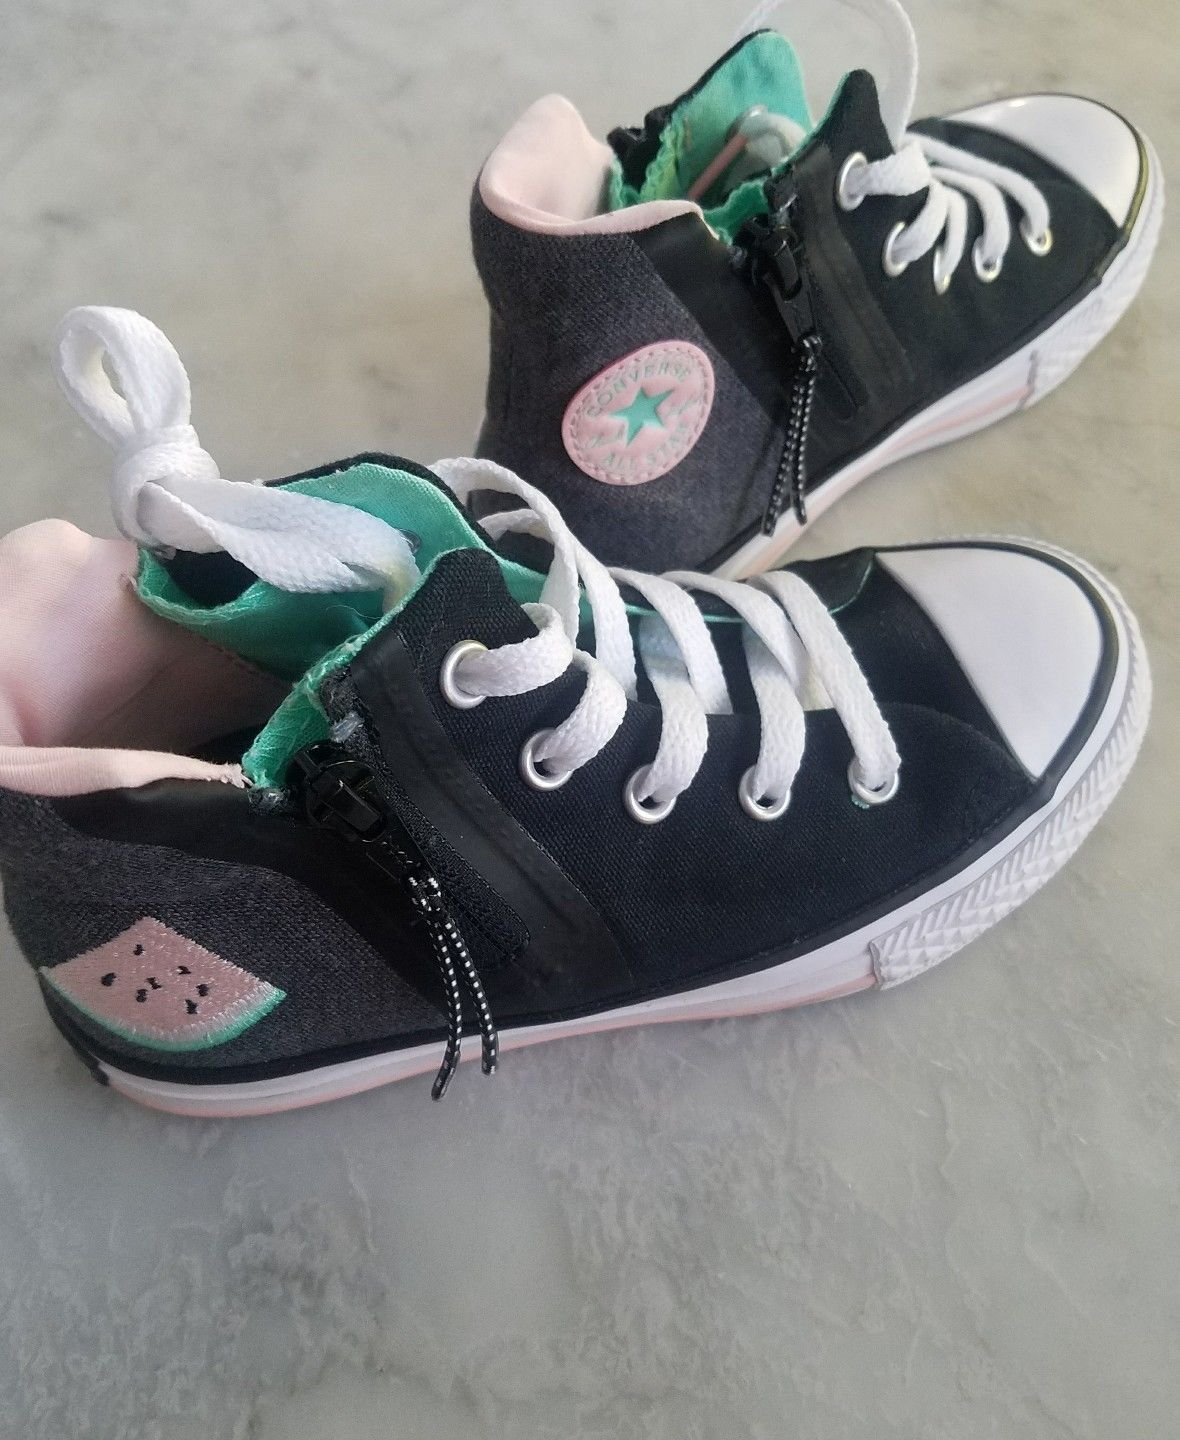 Converse Chuck Taylor All-Star Zip Watermelon High Top Kids Sz 12 - $74.80